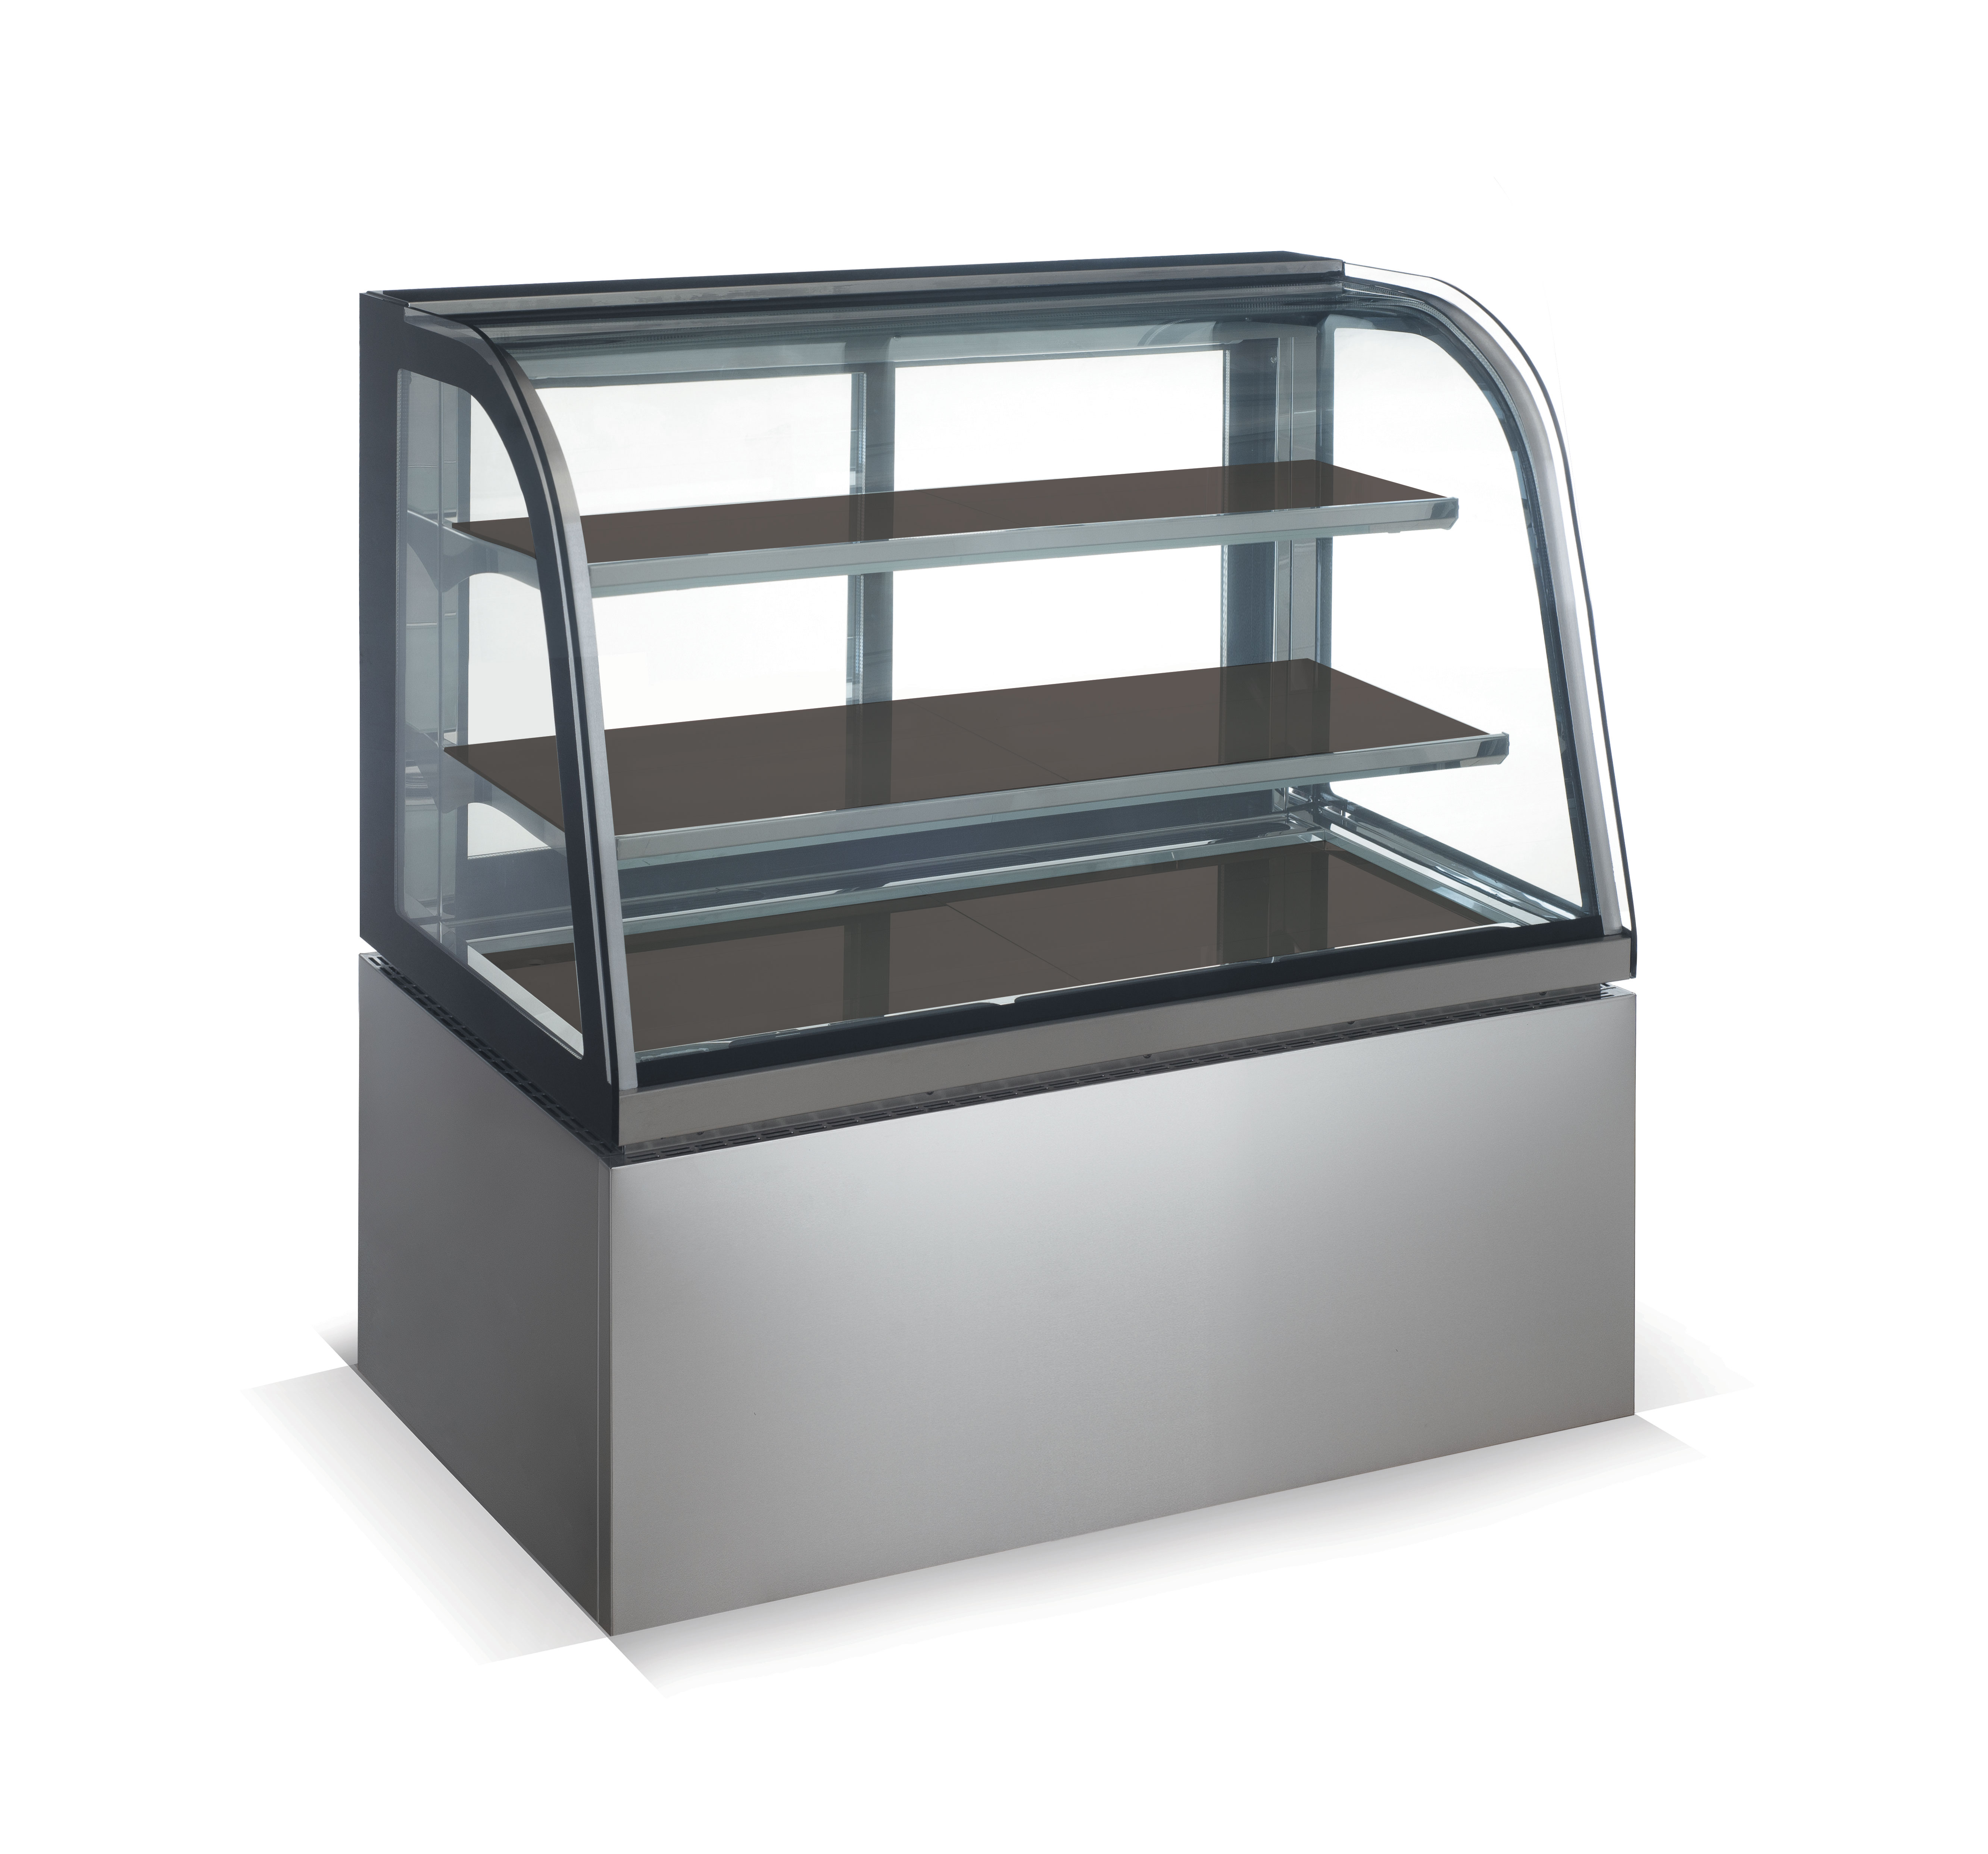 DISPLAY UNIT HEATED SALVADORE - F/STAND ADONE - 1500mm